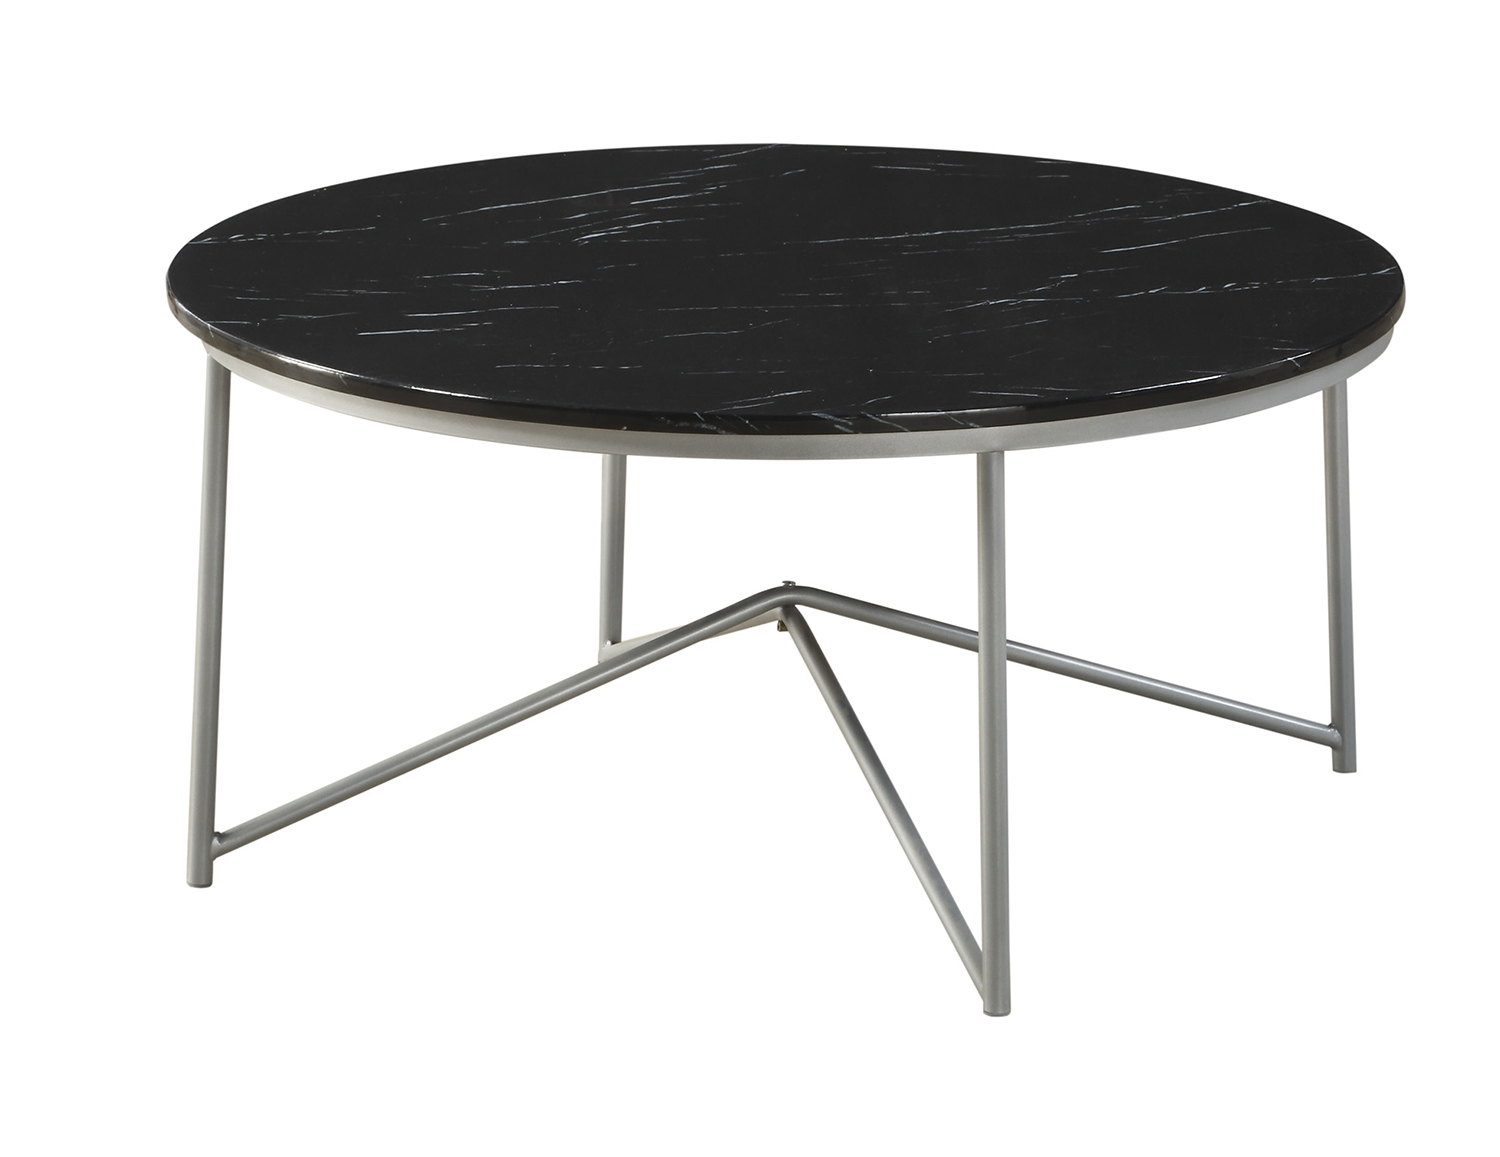 Homelegance Perivale 3-Piece Cocktail/Coffee Tables - Black Marble - Silver Legs